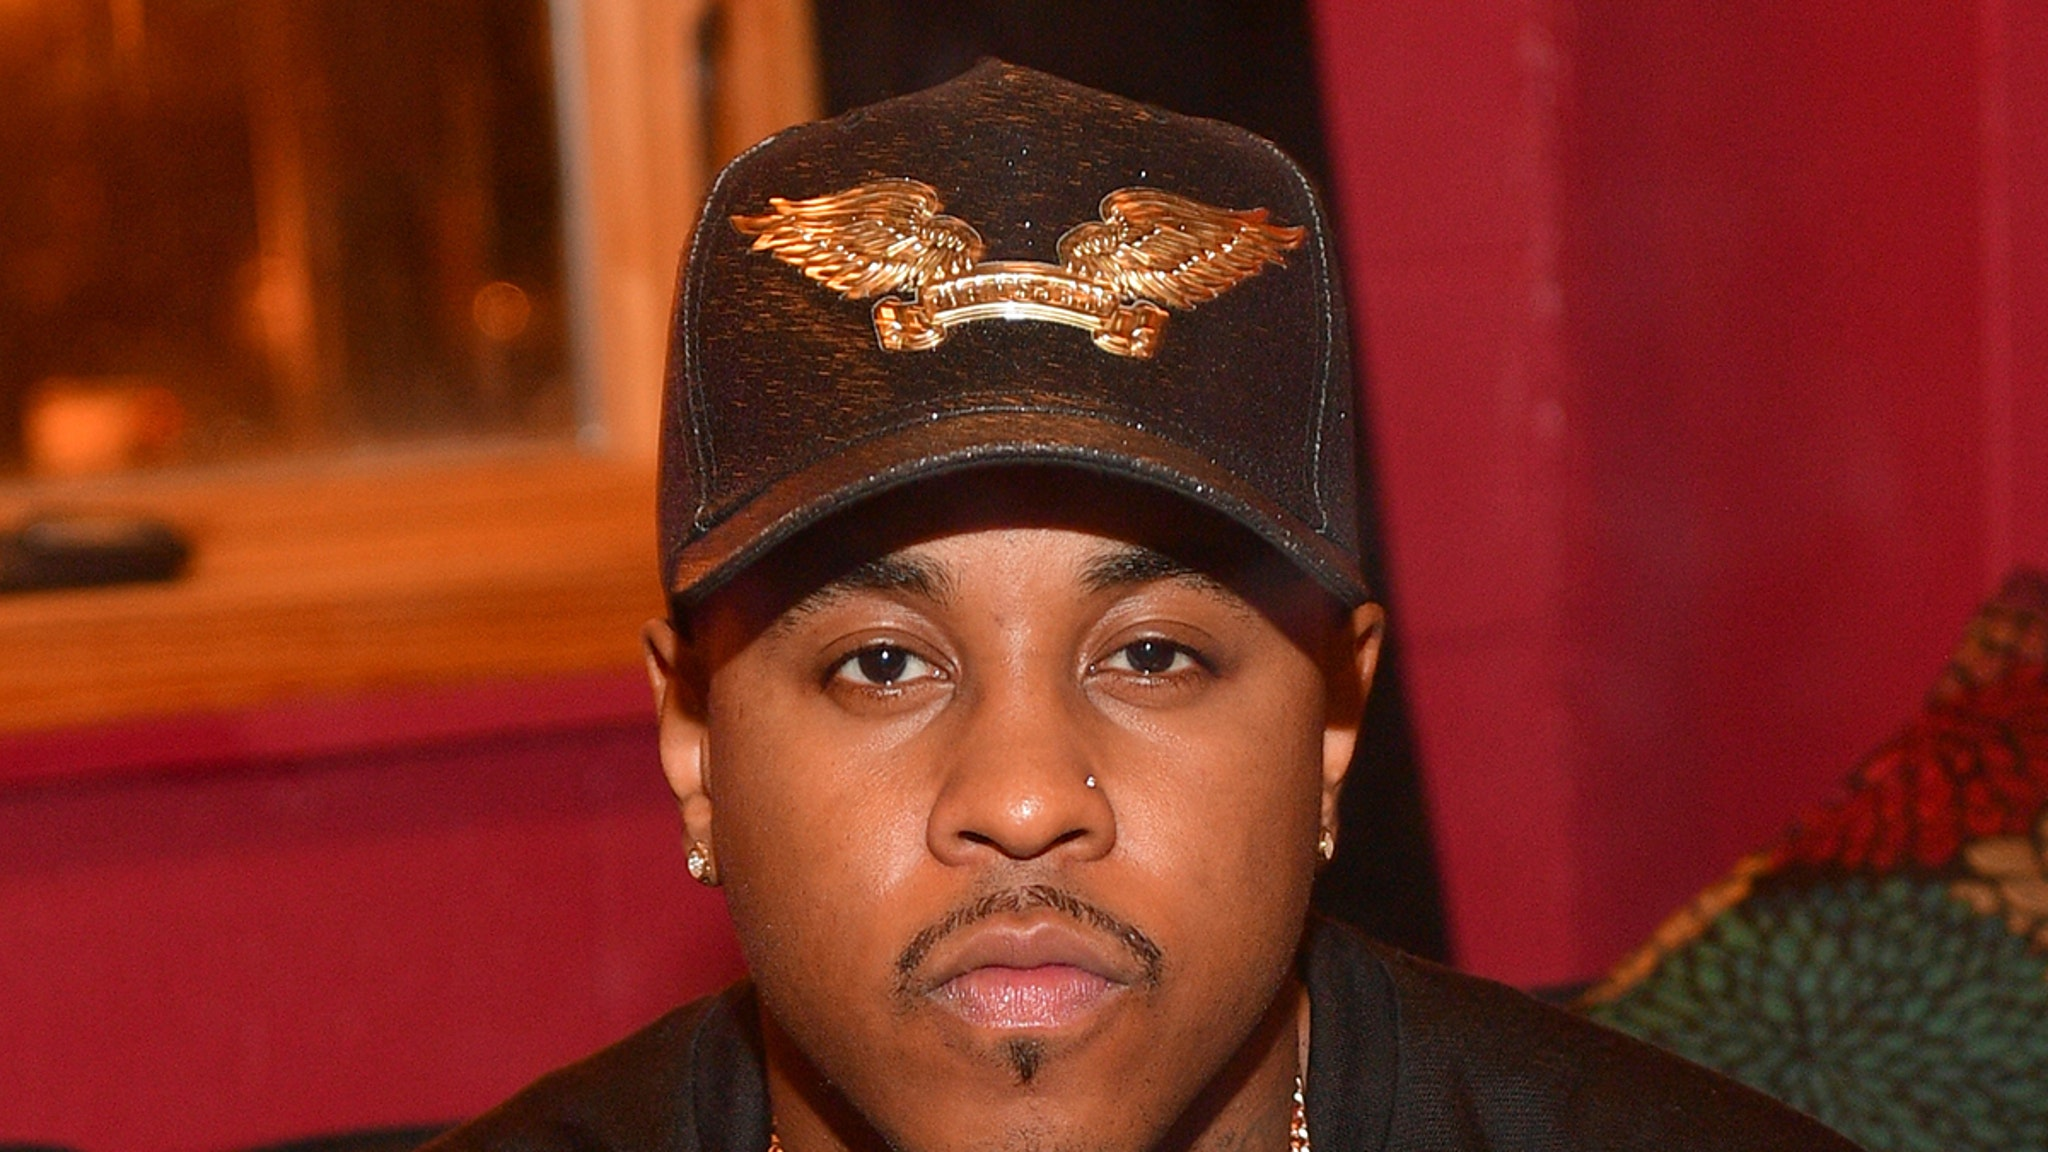 Jeremih Transferred Out of ICU After COVID Scare, On Road to Recovery